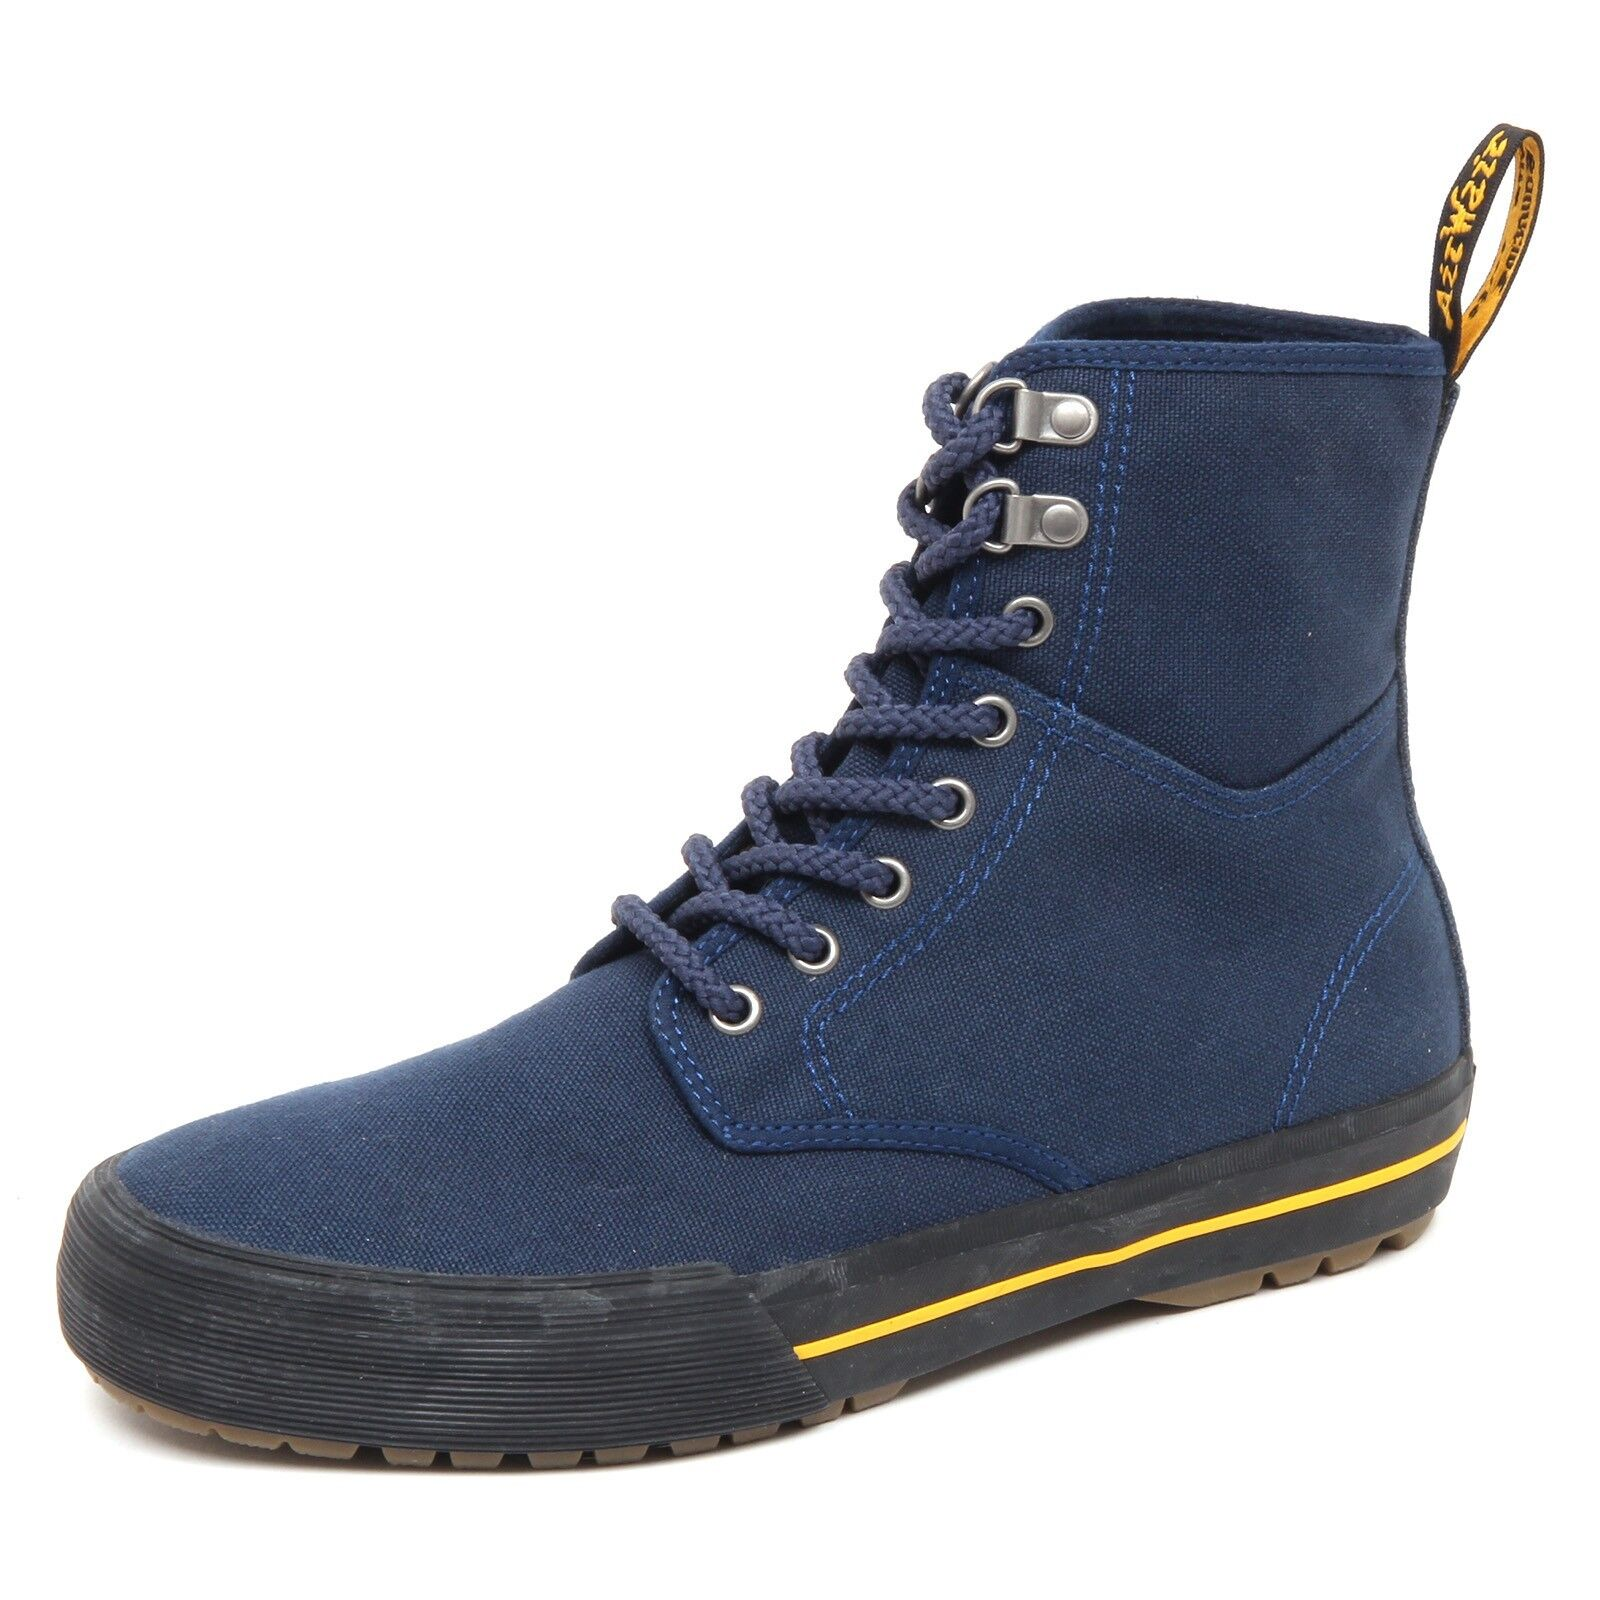 D8220 (without box) sneaker uomo blu DR. MARTENS canvas shoe boot man